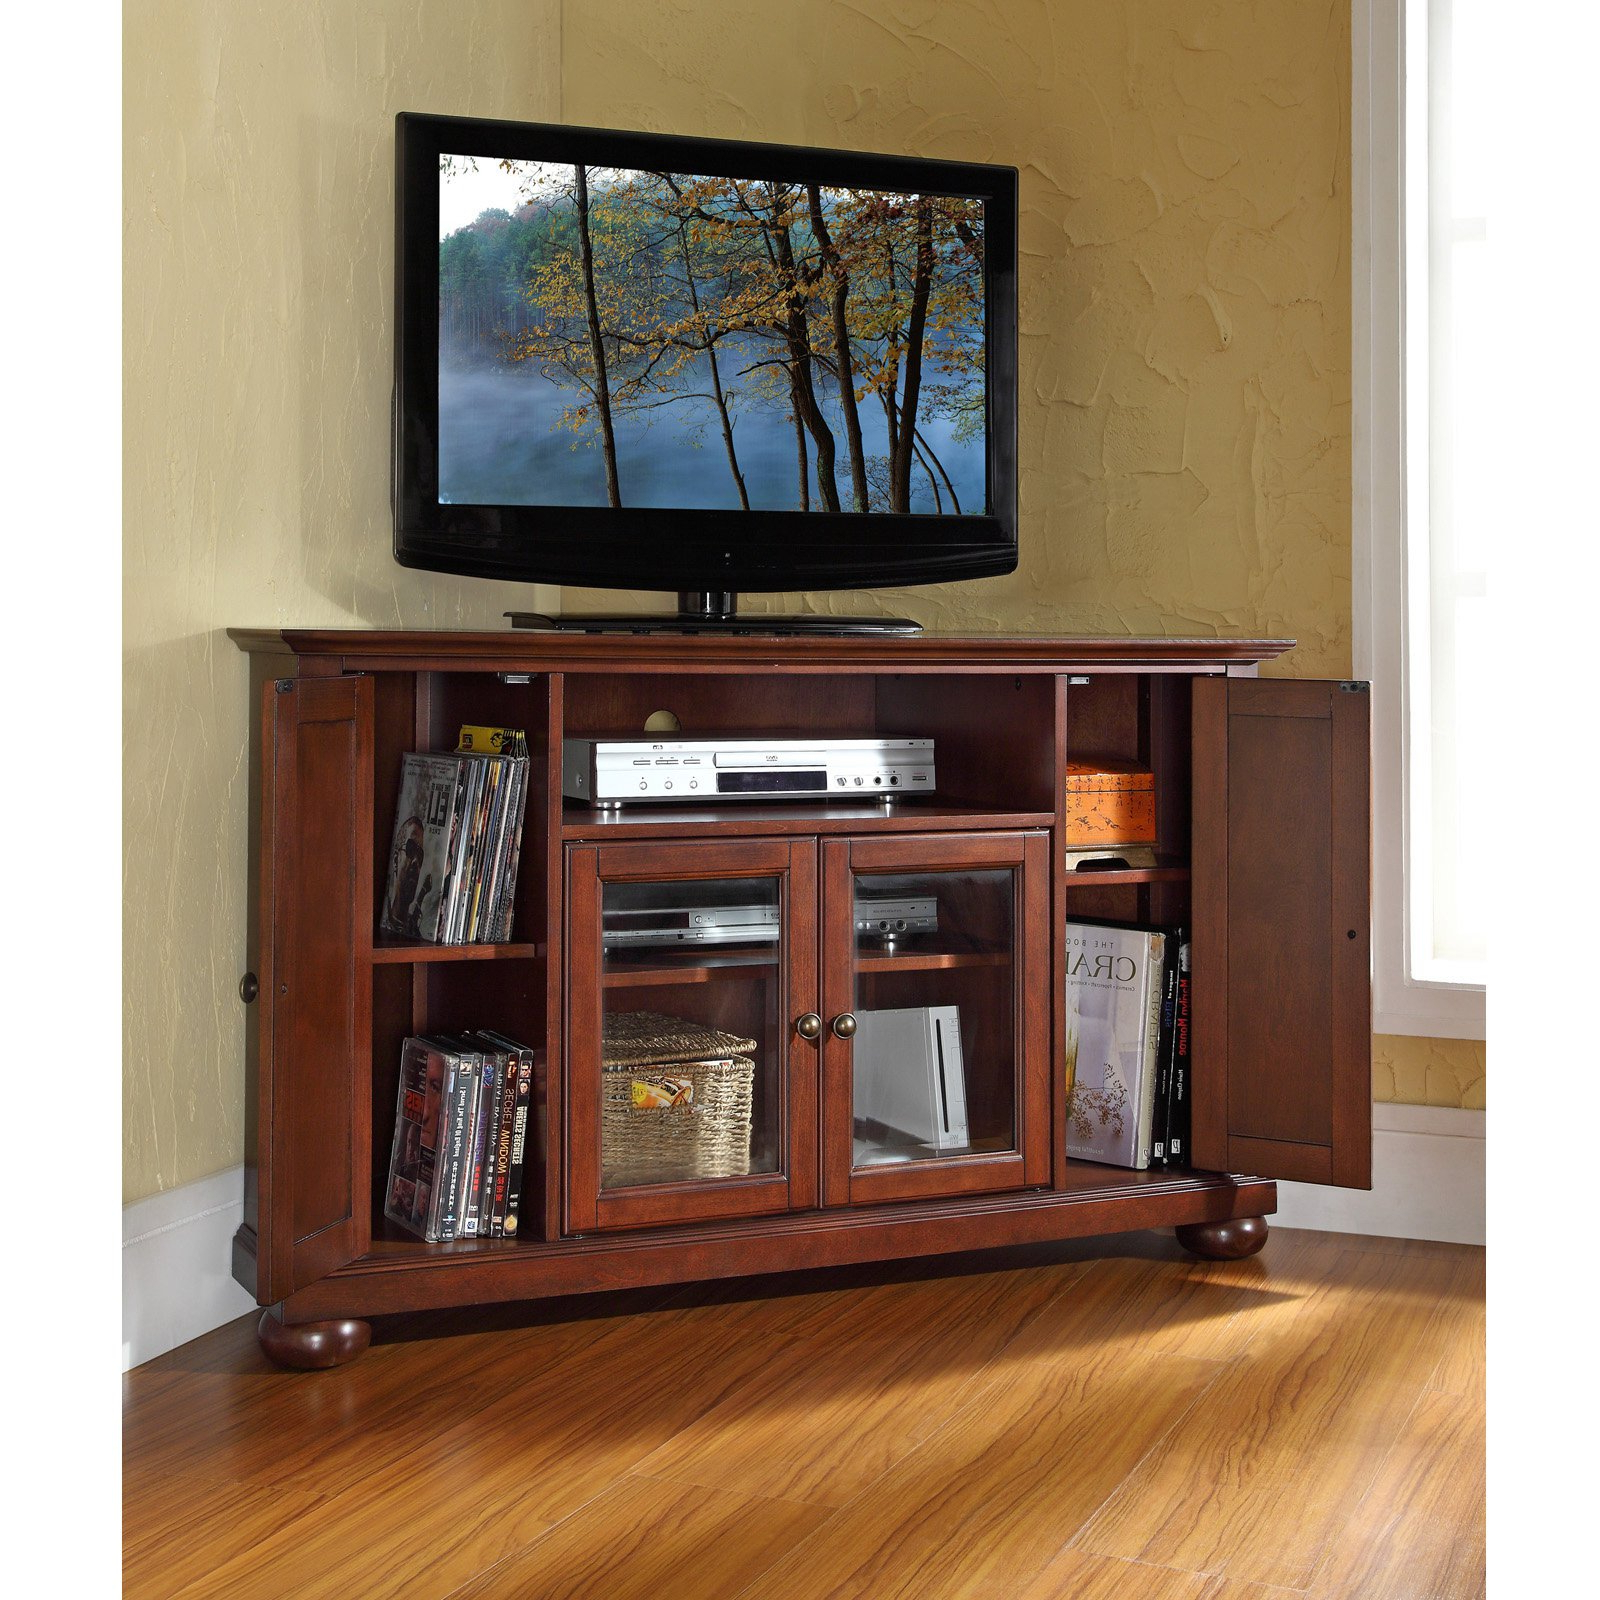 Well Known Corner Tv Stands For 55 Inch Tv For Fireplace Tv Stand Amazon Stands Costco 55 Inch Walmart 65 Corner (View 3 of 20)